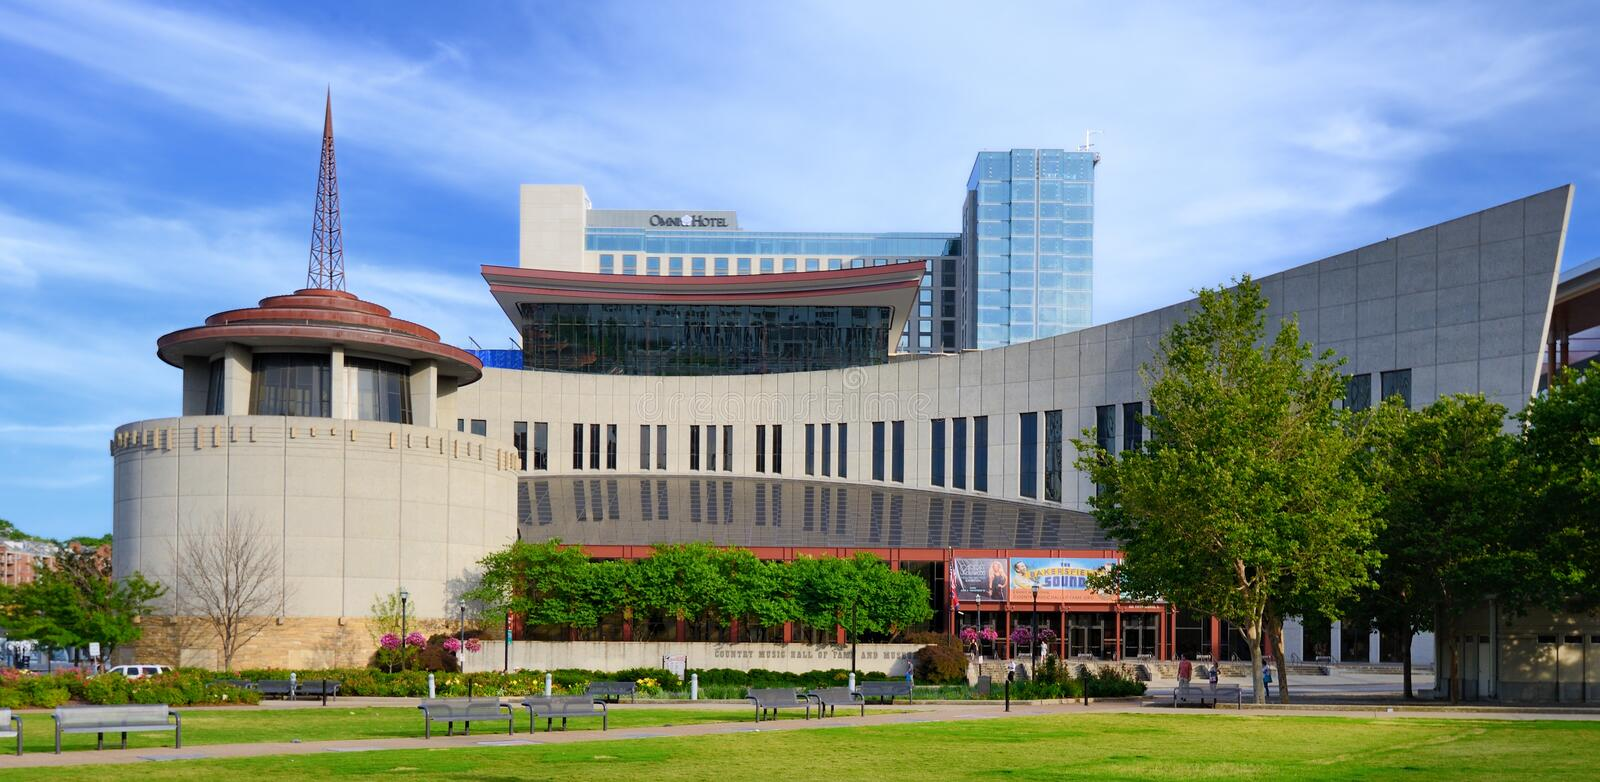 Country Music Hall of Fame. And Museum June 14, 2013 in Nashville, TN. The museum opened in 1961 and preserves the evolving history and traditions of country royalty free stock images